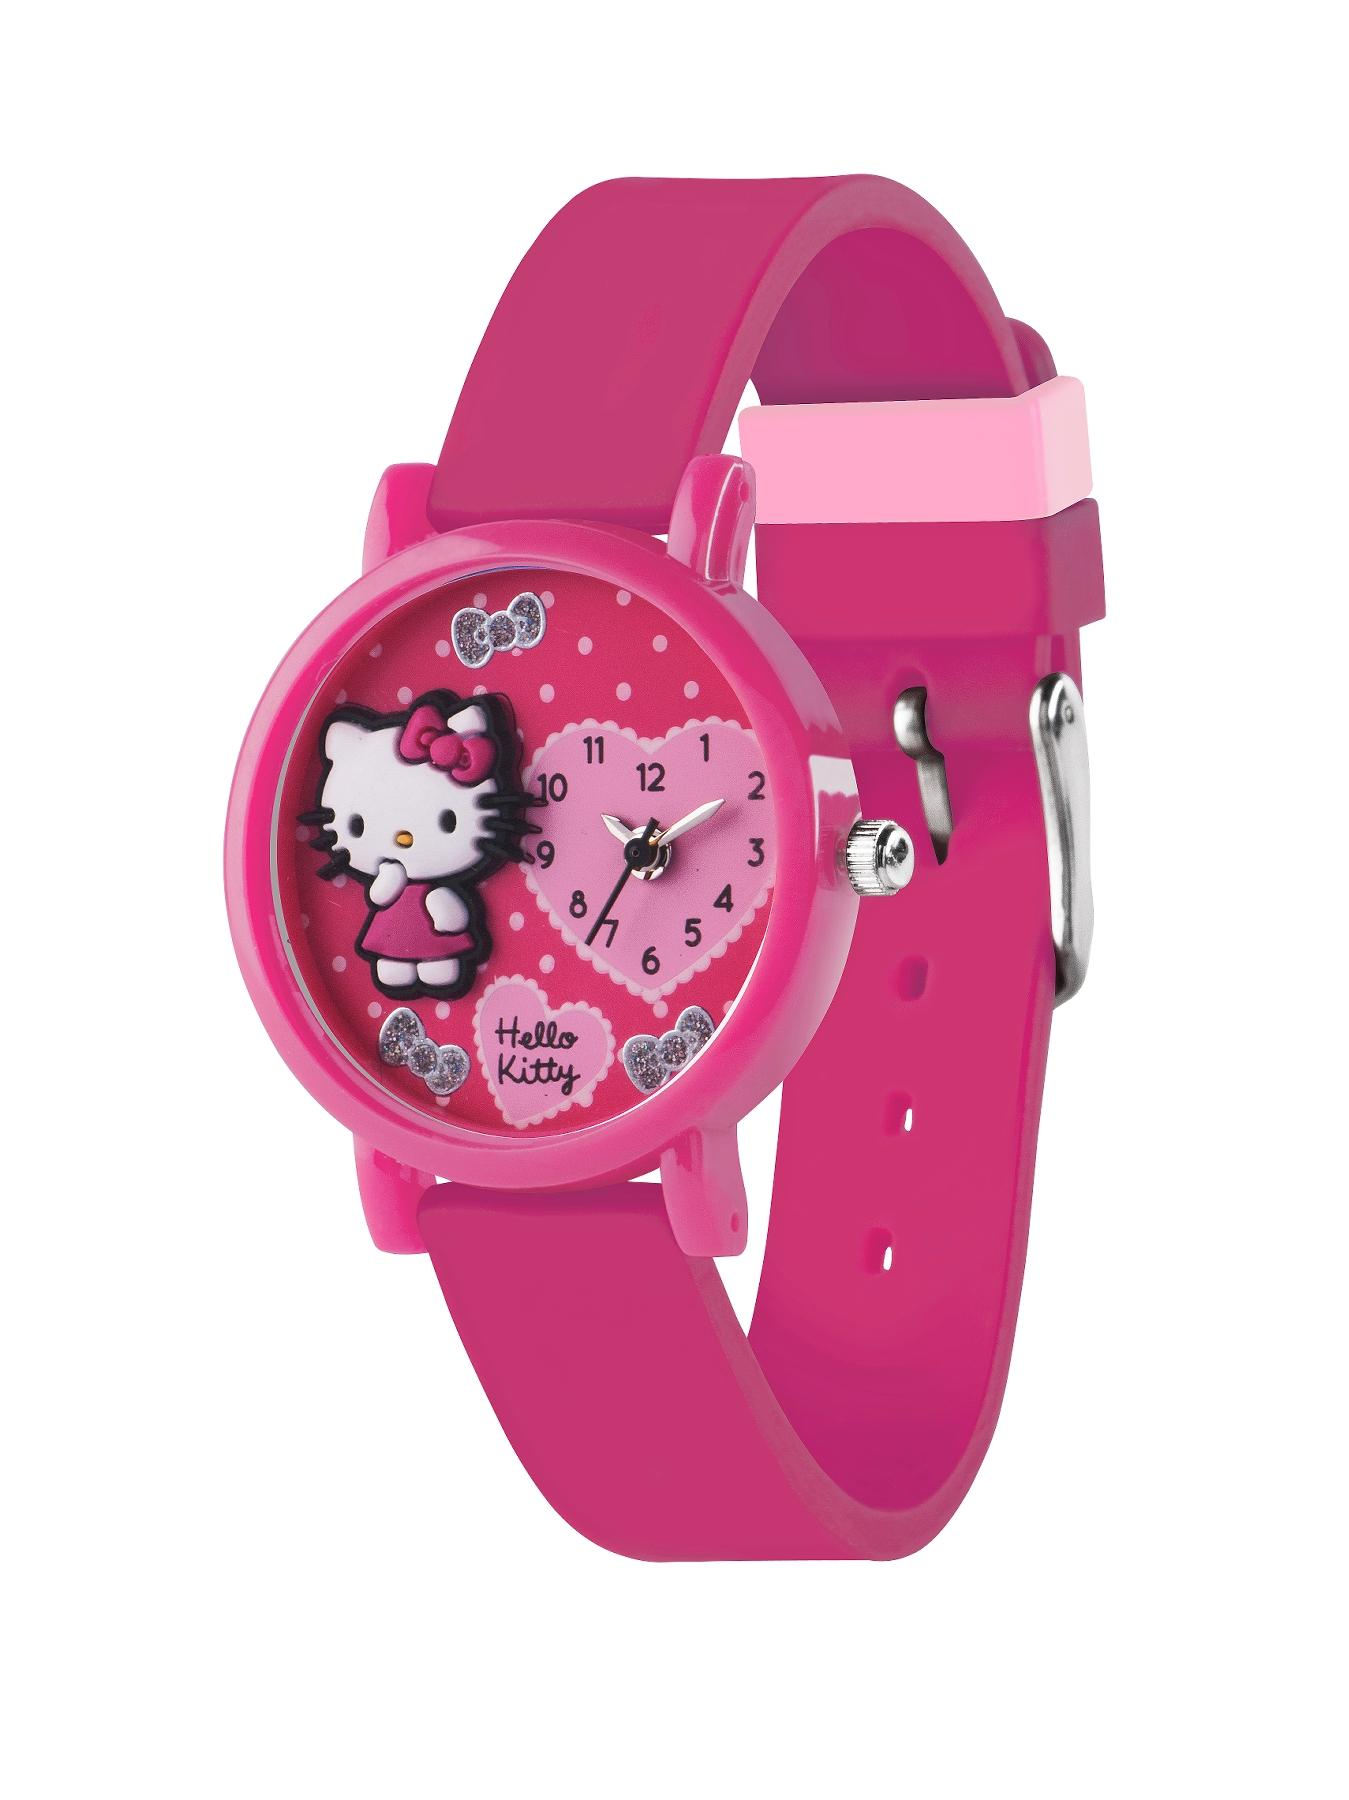 Pink Silicone Strap Childrens Watch at Littlewoods